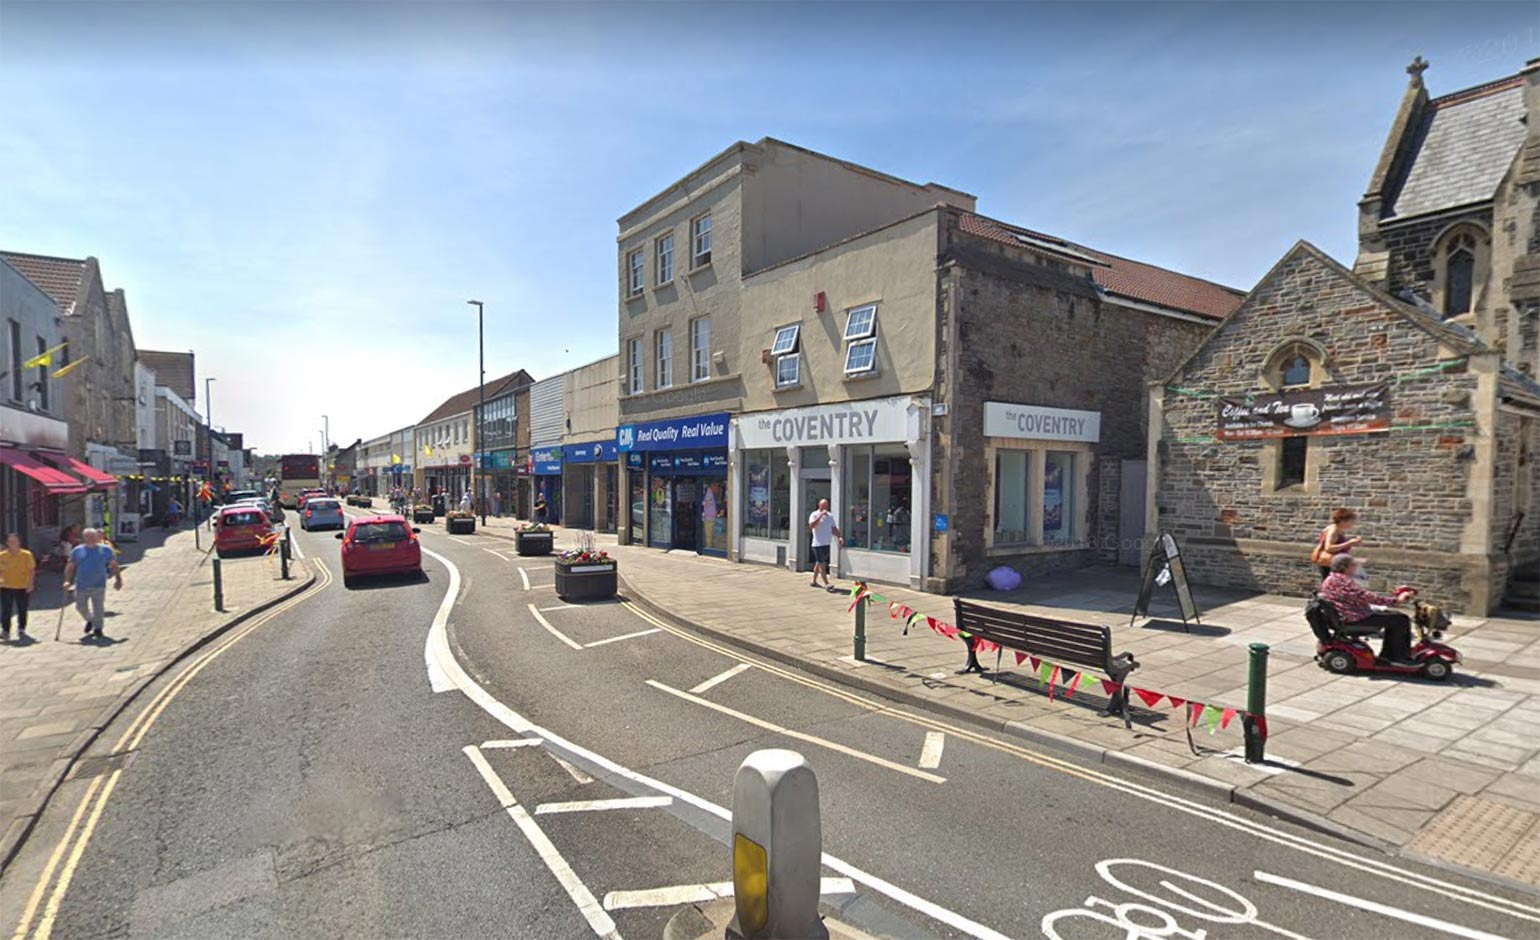 £1.5m to help Keynsham High Street become more attractive and accessible | Bath Echo